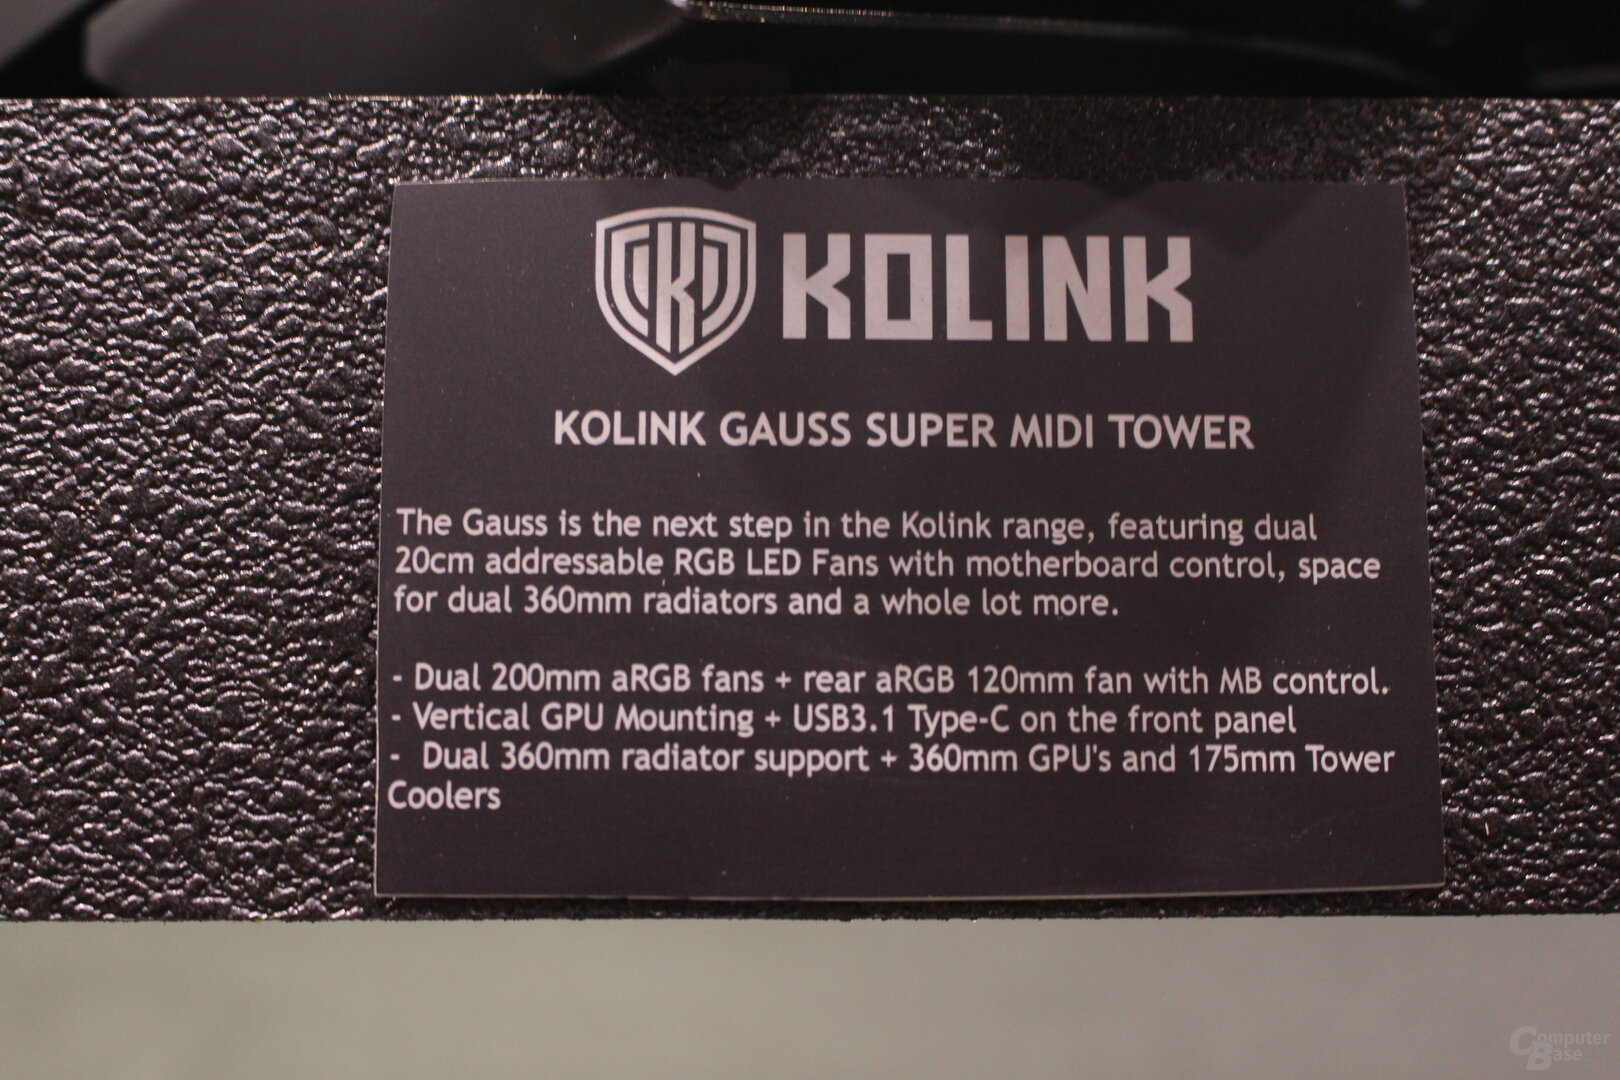 Kolink Gauss Super